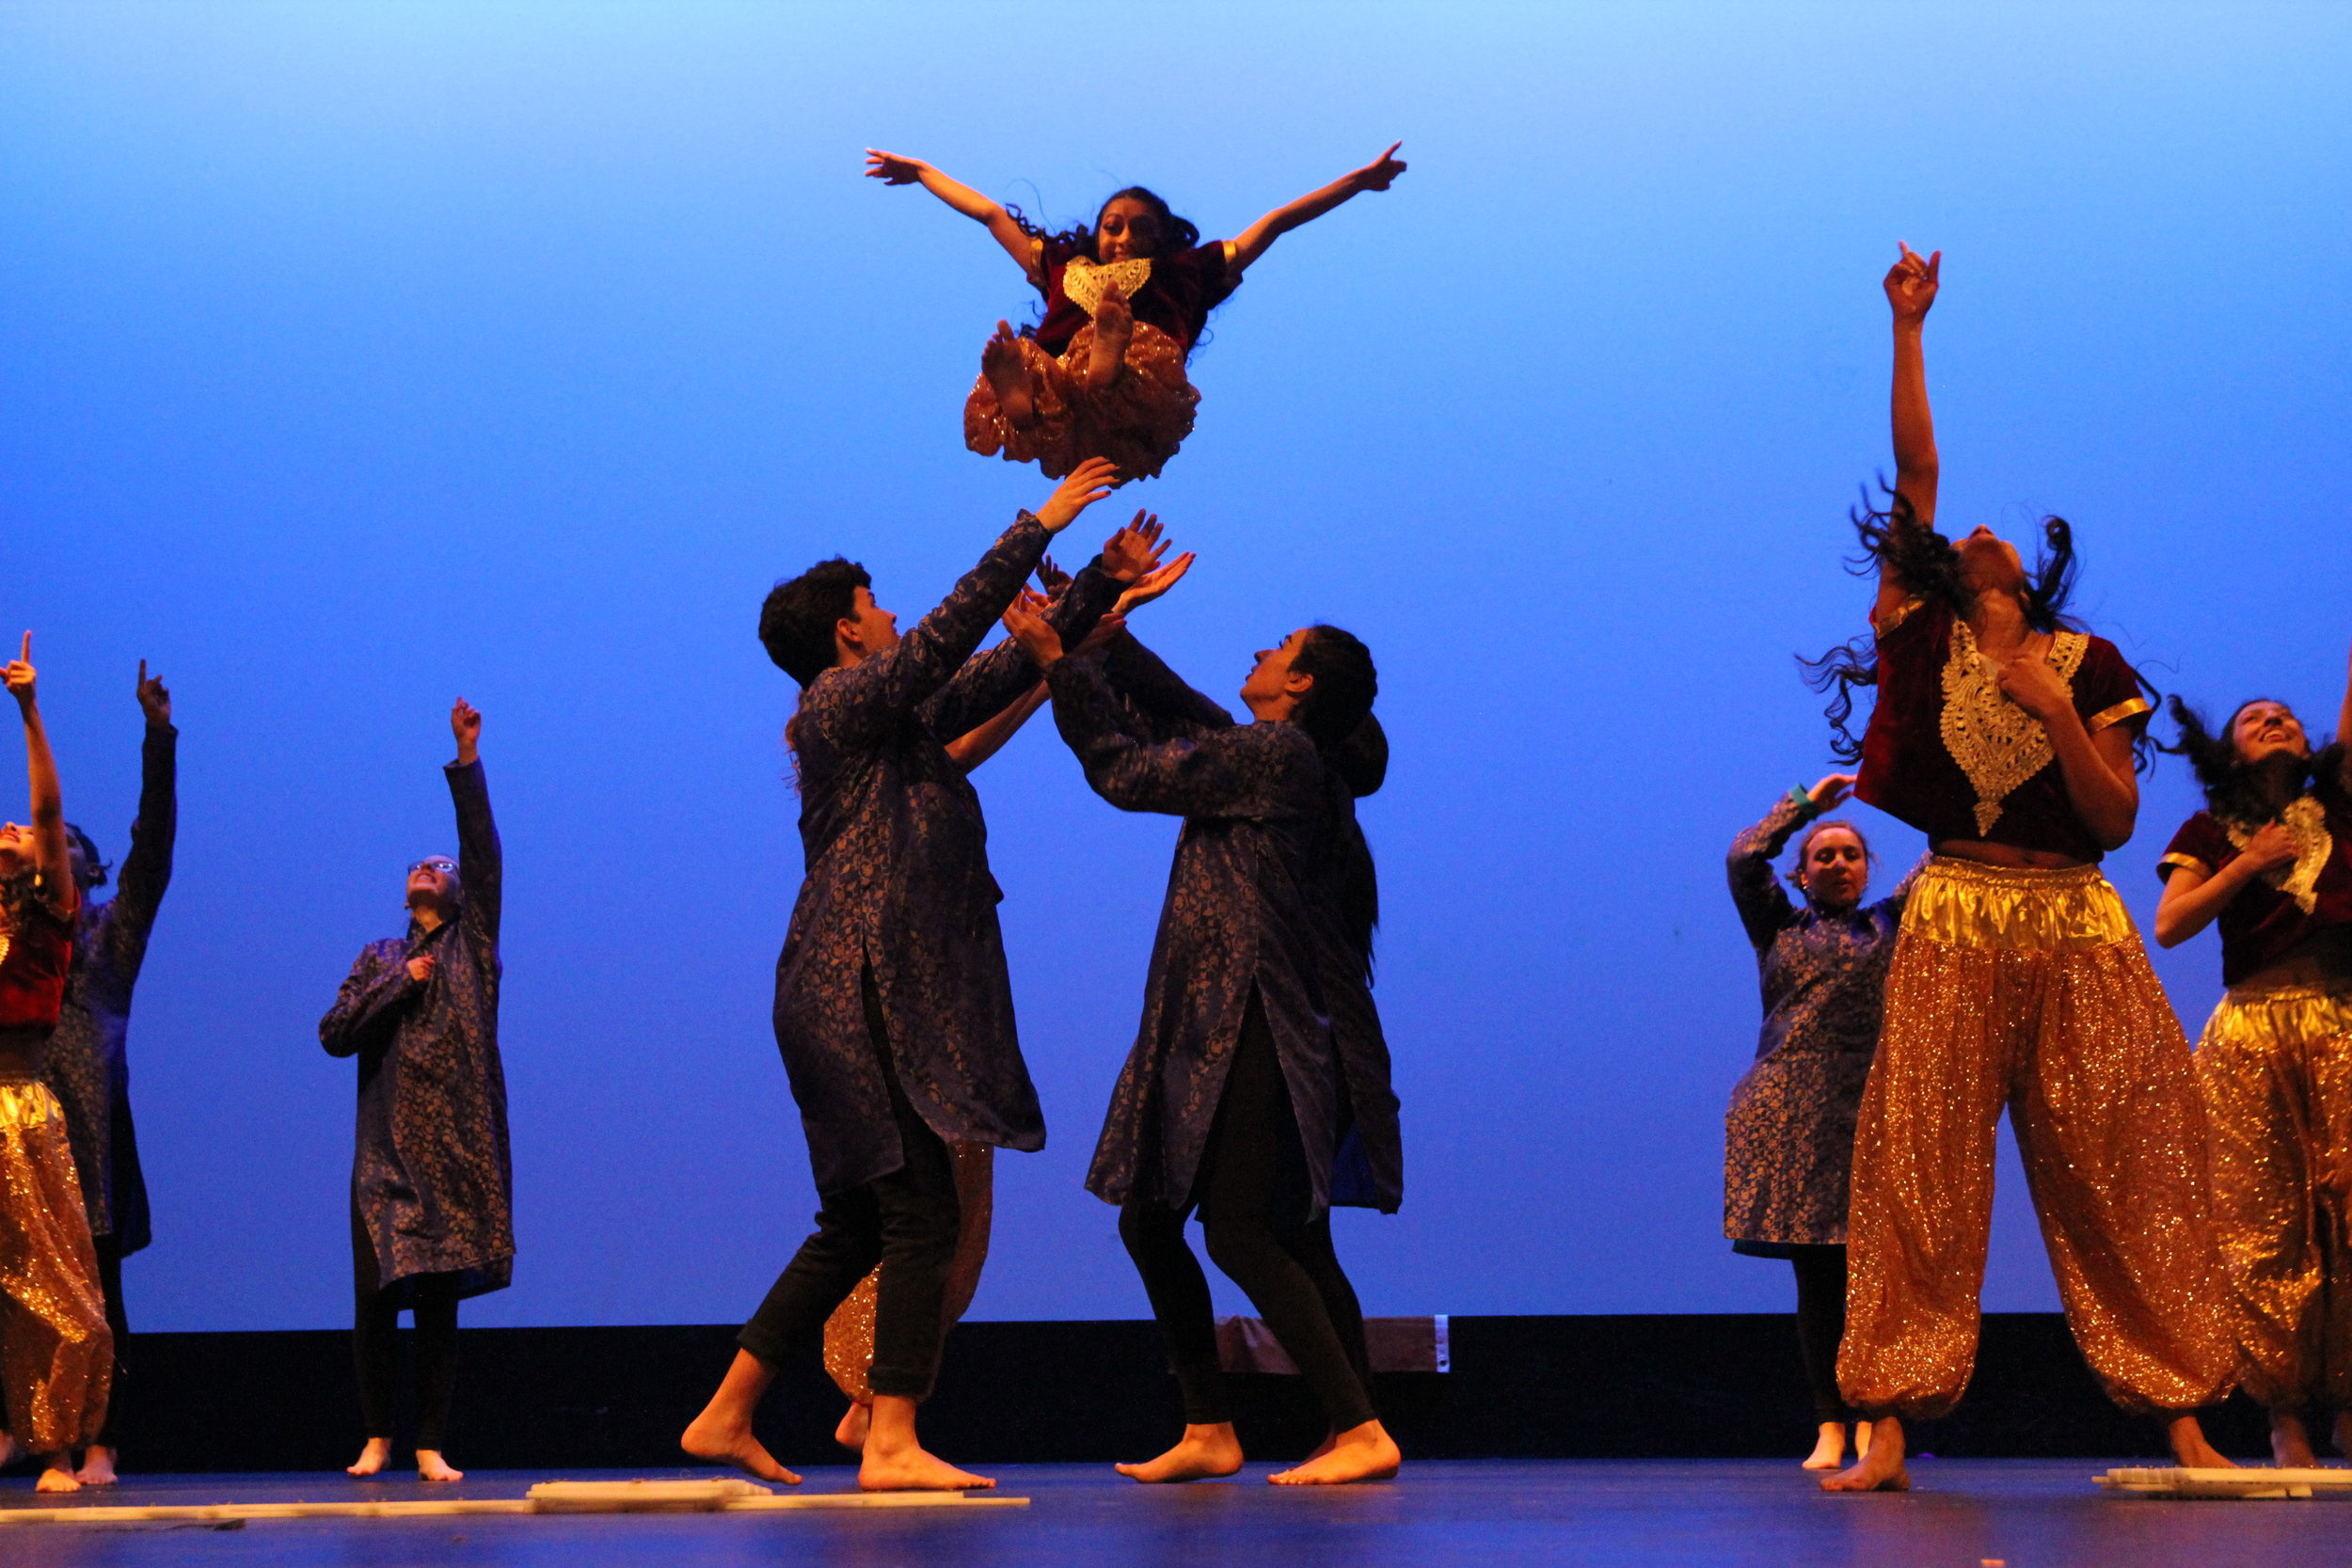 A dancer is thrown into the air and caught to end this sensational night of dances from the diverse dance groups that make up Northside College Prep International Night